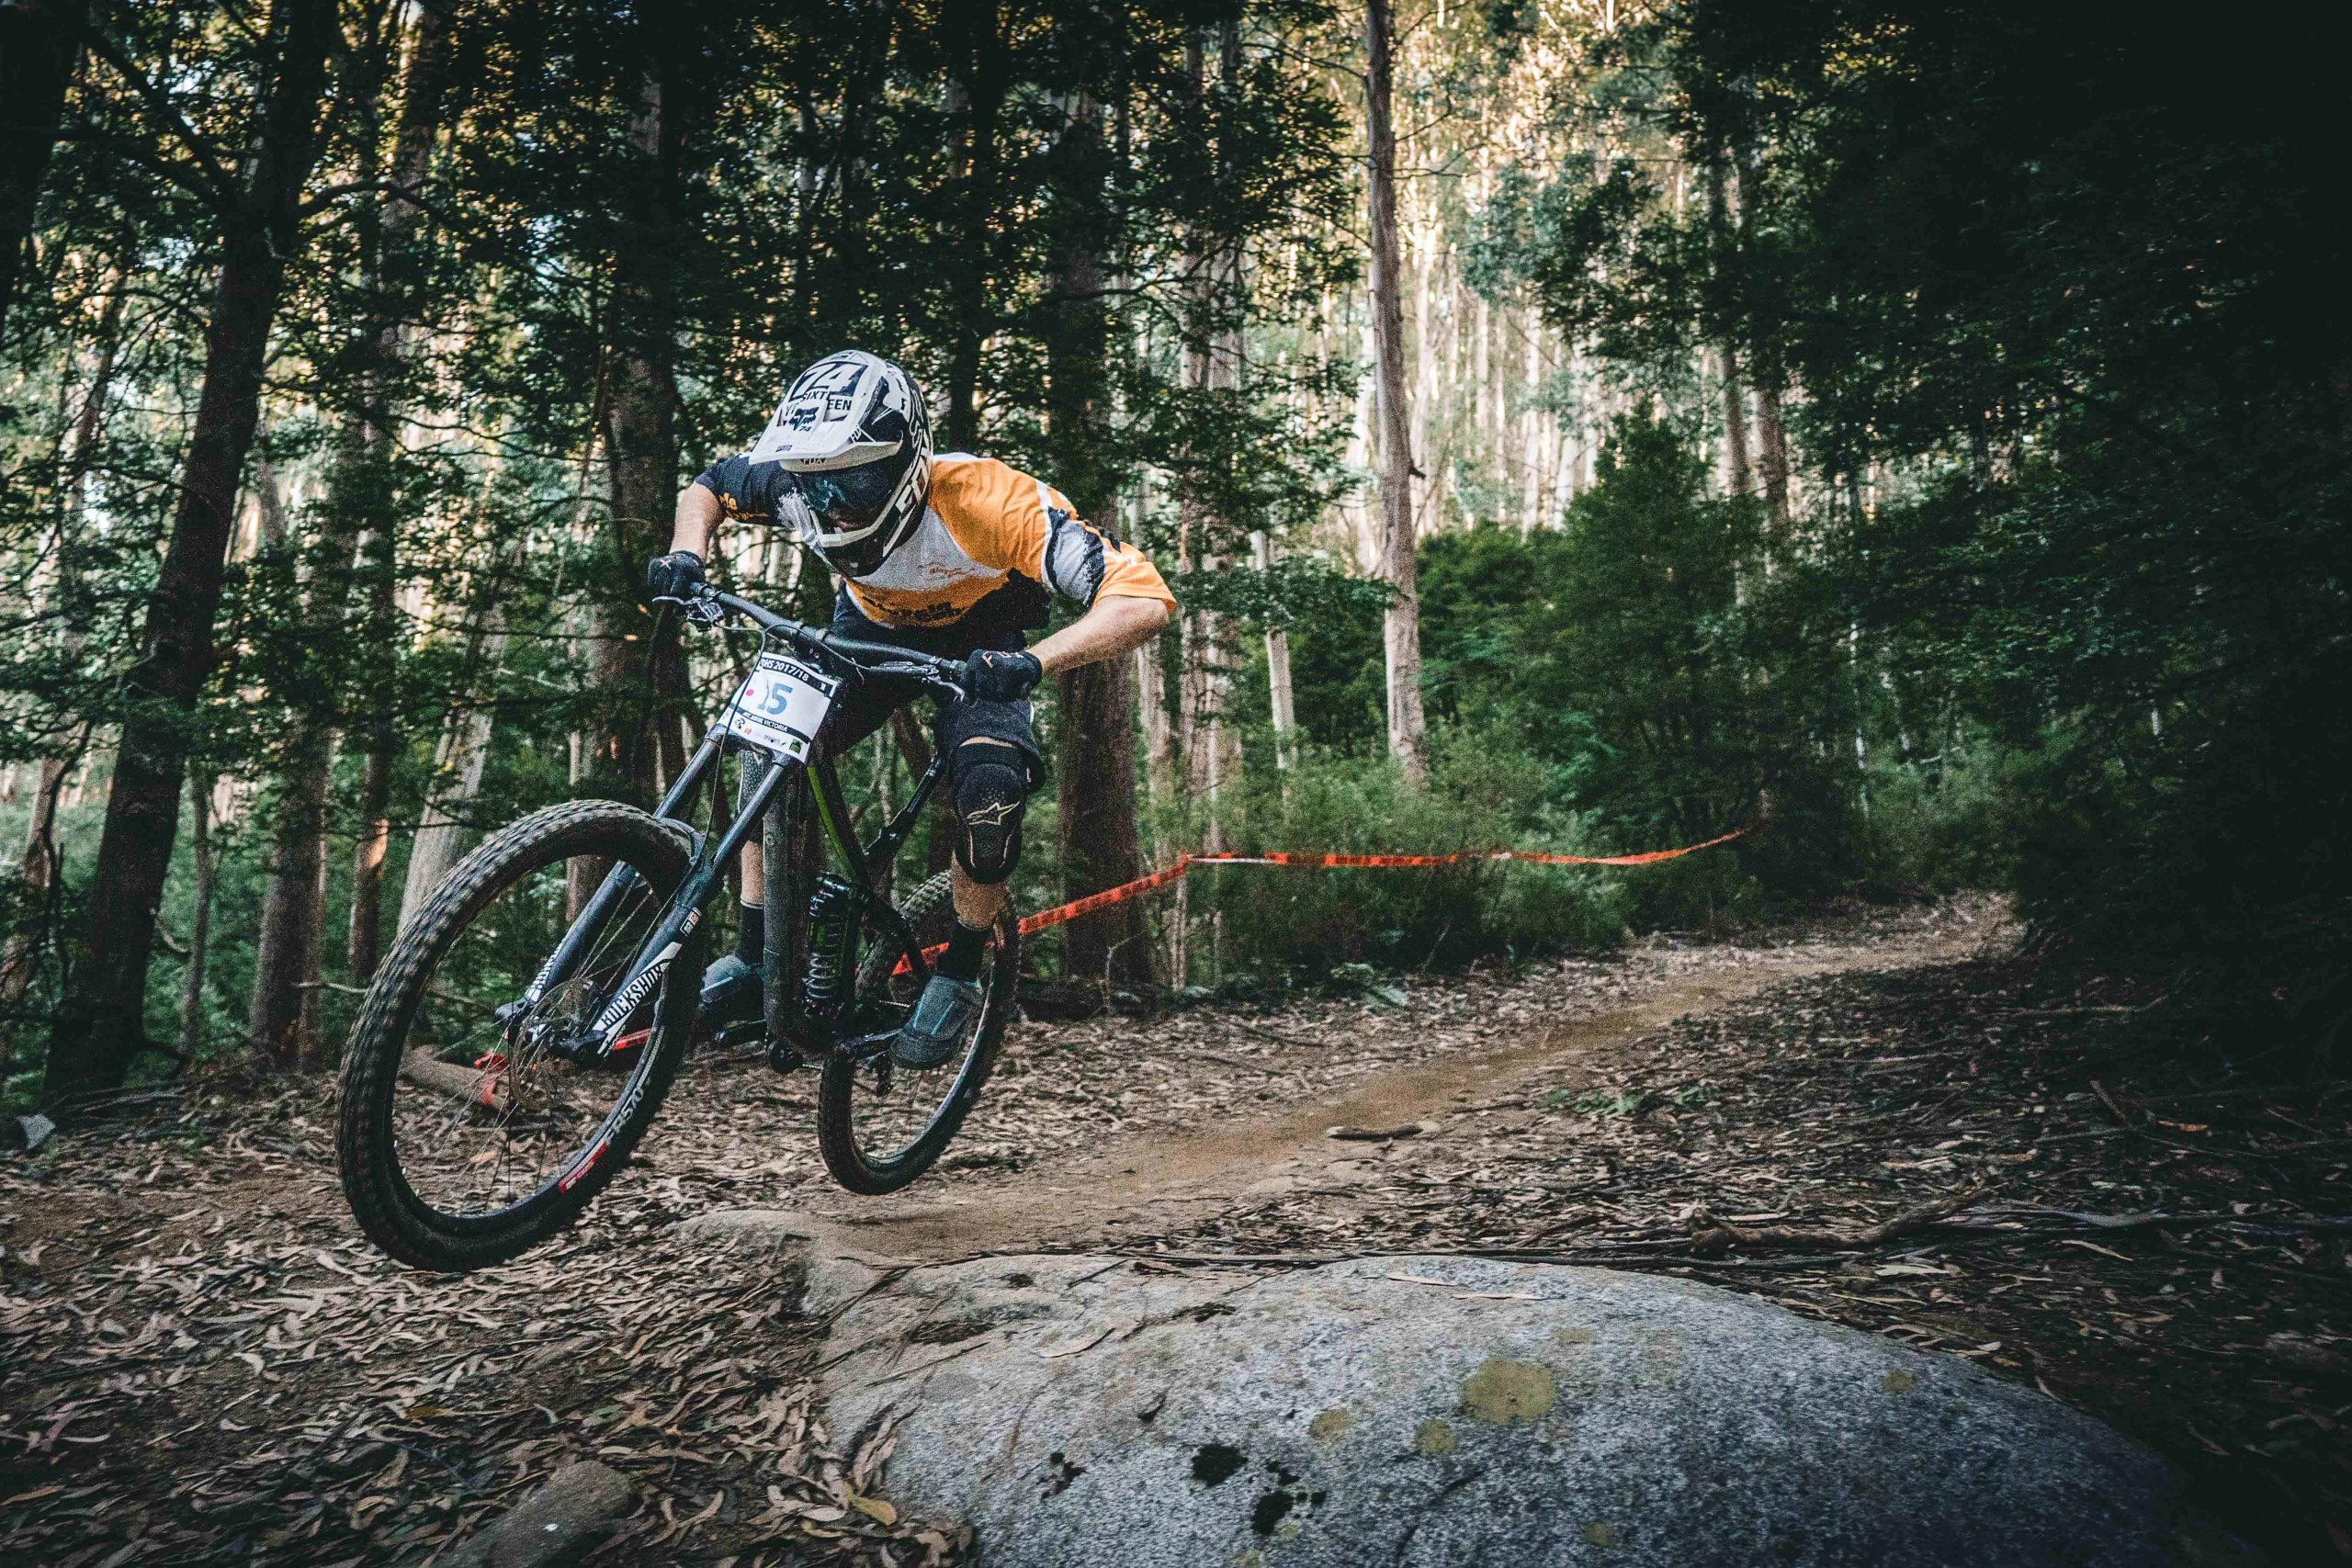 The Best Bmx Helmet: Shopping Guide and Recommendations (09/21)